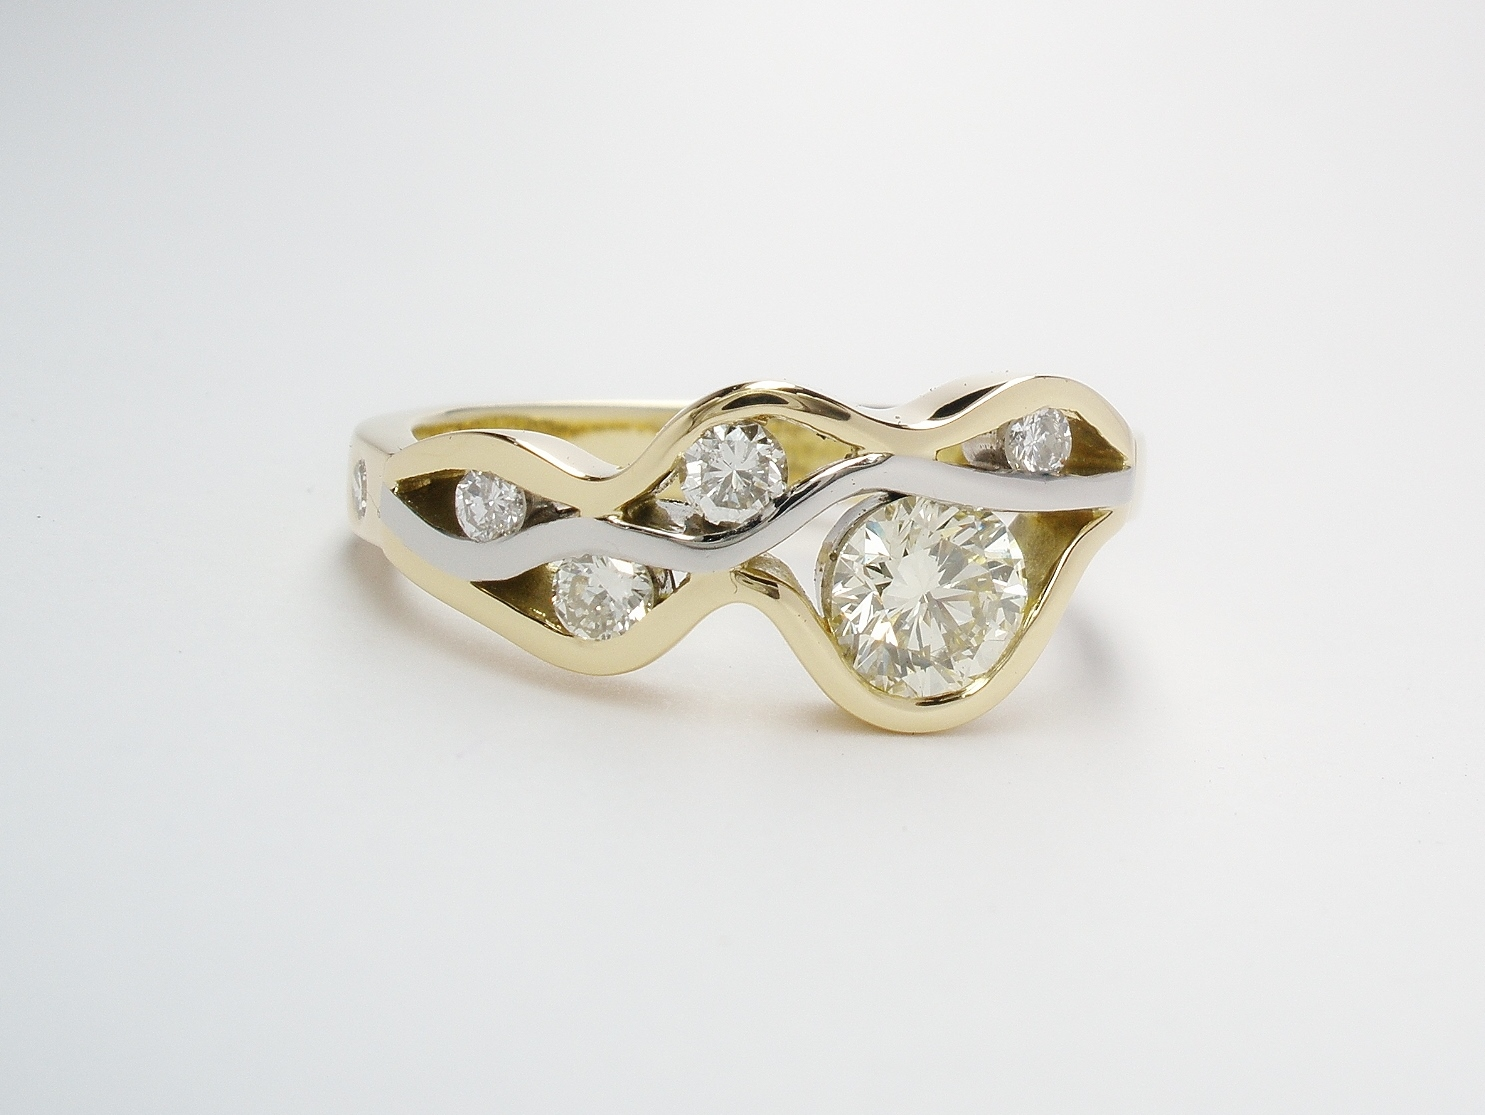 A 6 stone round brilliant cut diamond 'wave' style ring mounted in 18ct. yellow gold and platinum.